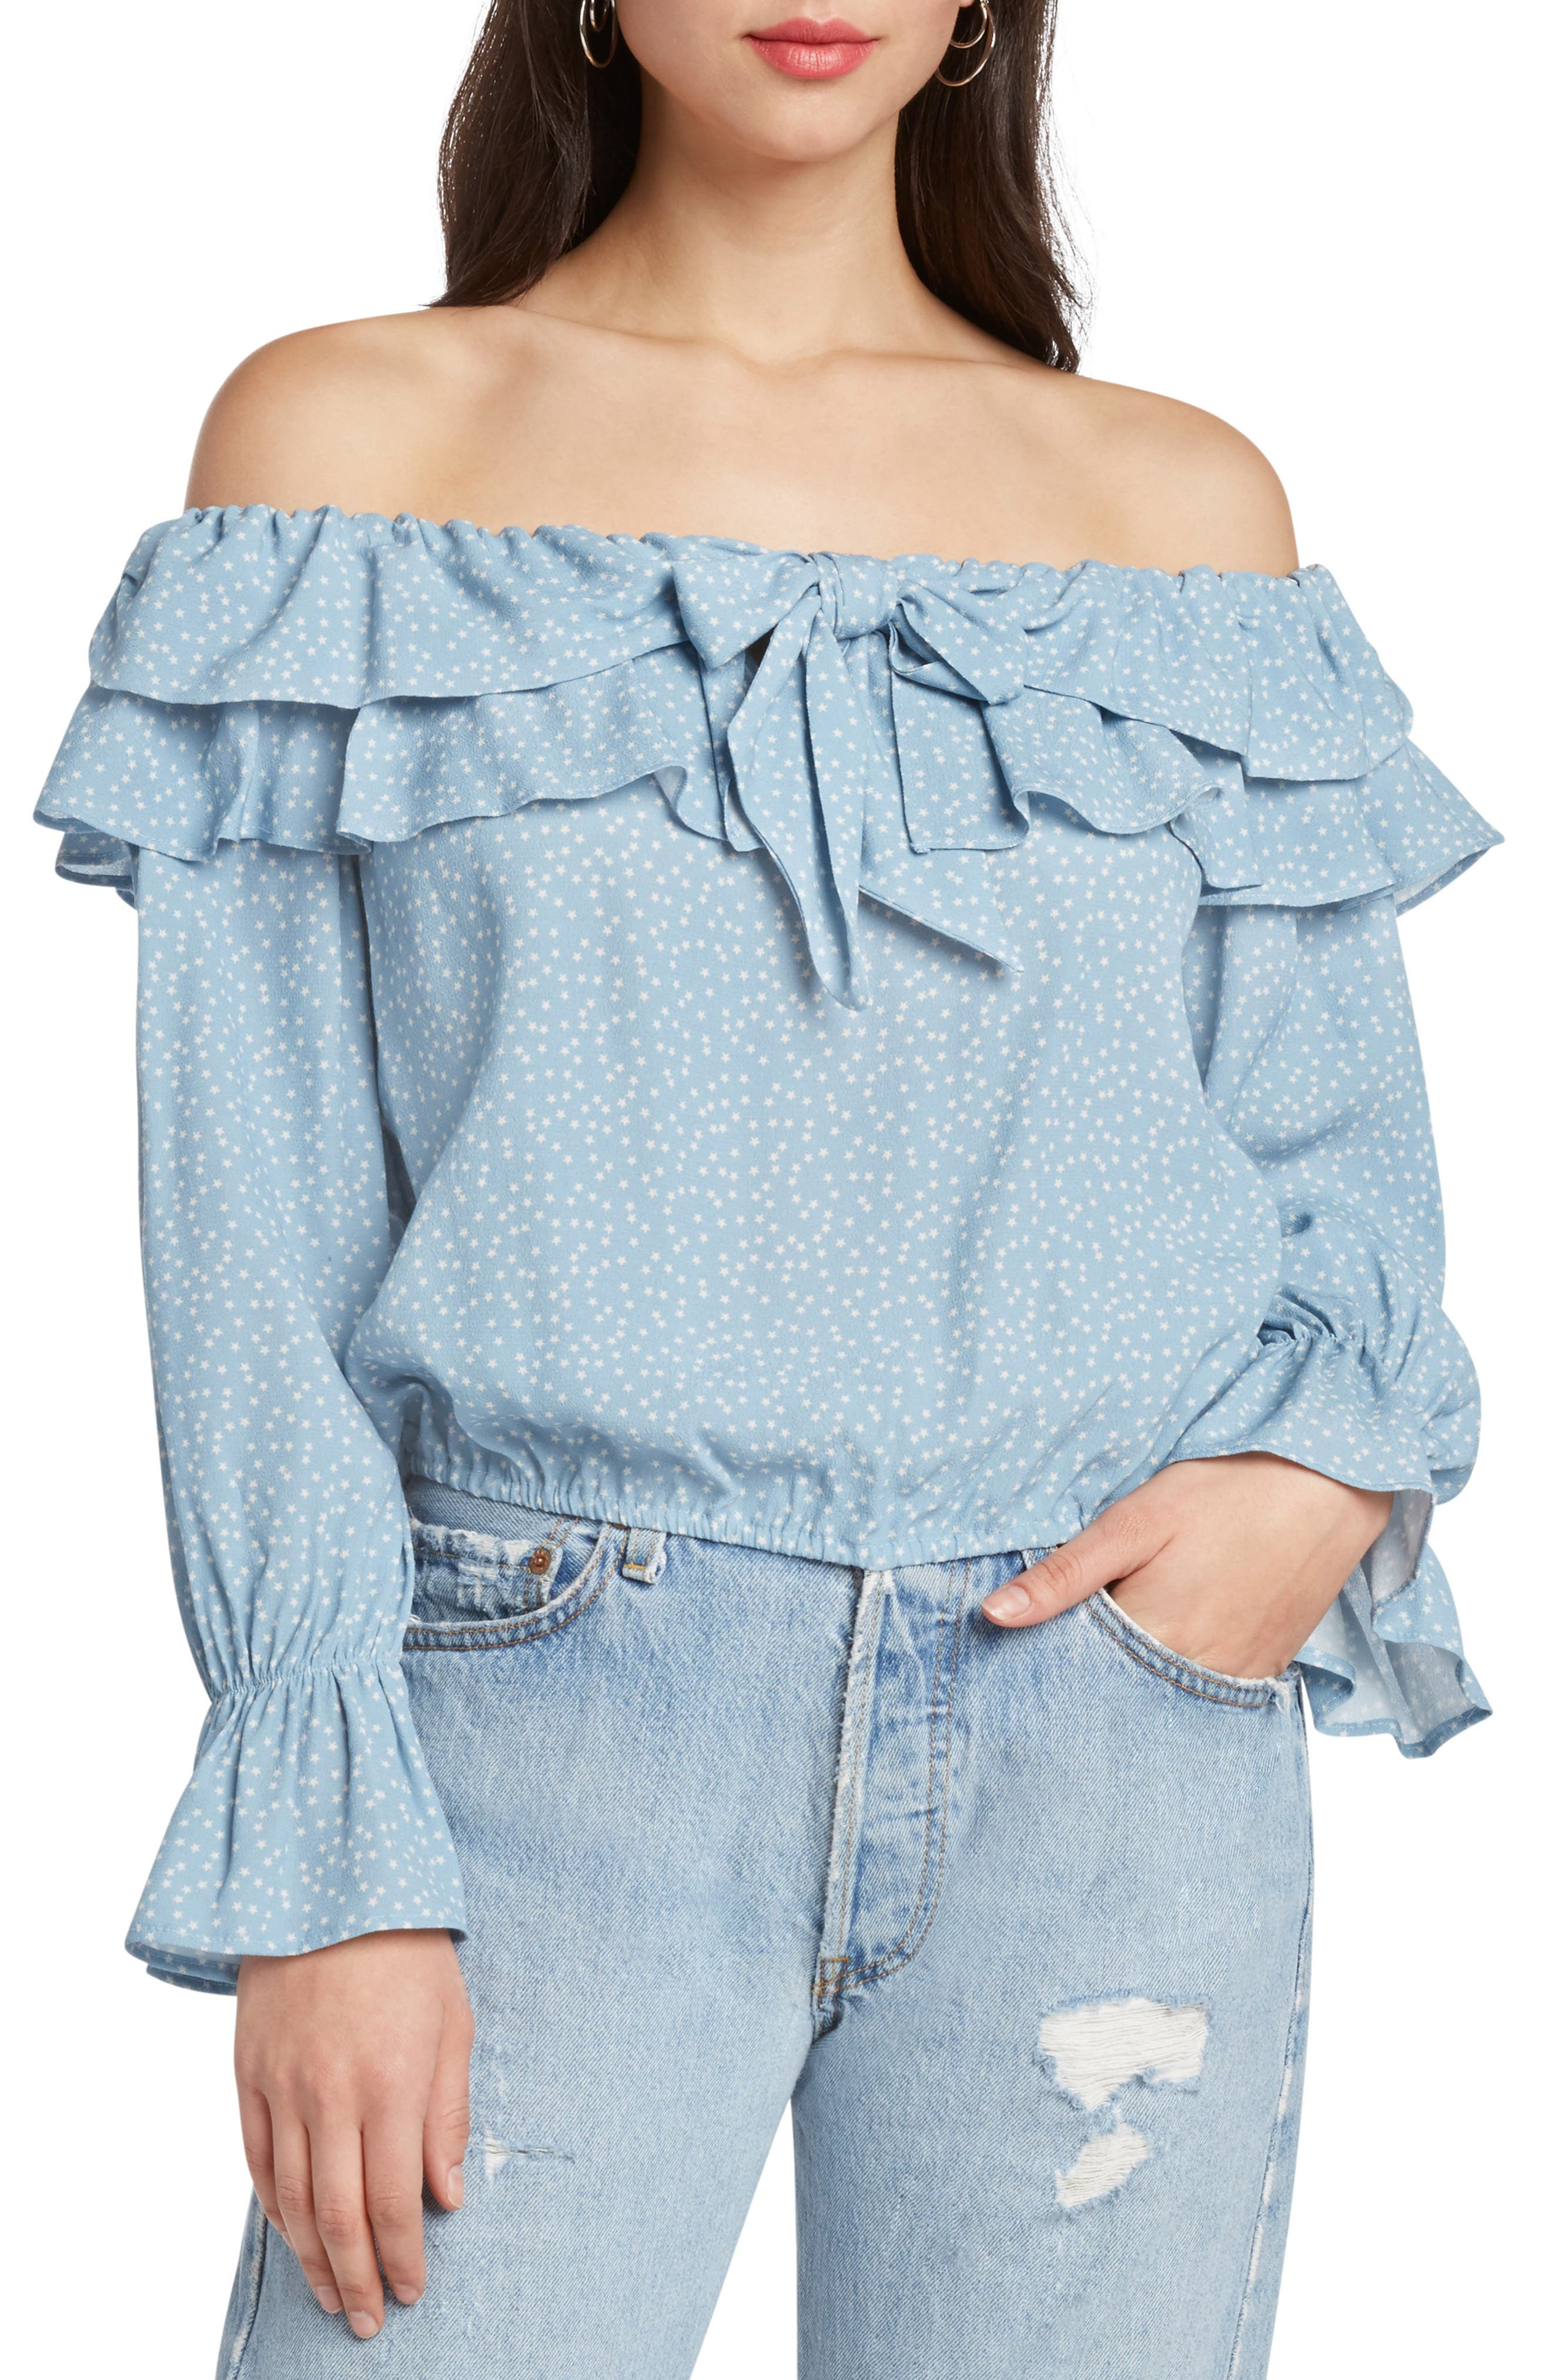 WILLOW & CLAY STAR PRINT OFF THE SHOULDER TOP